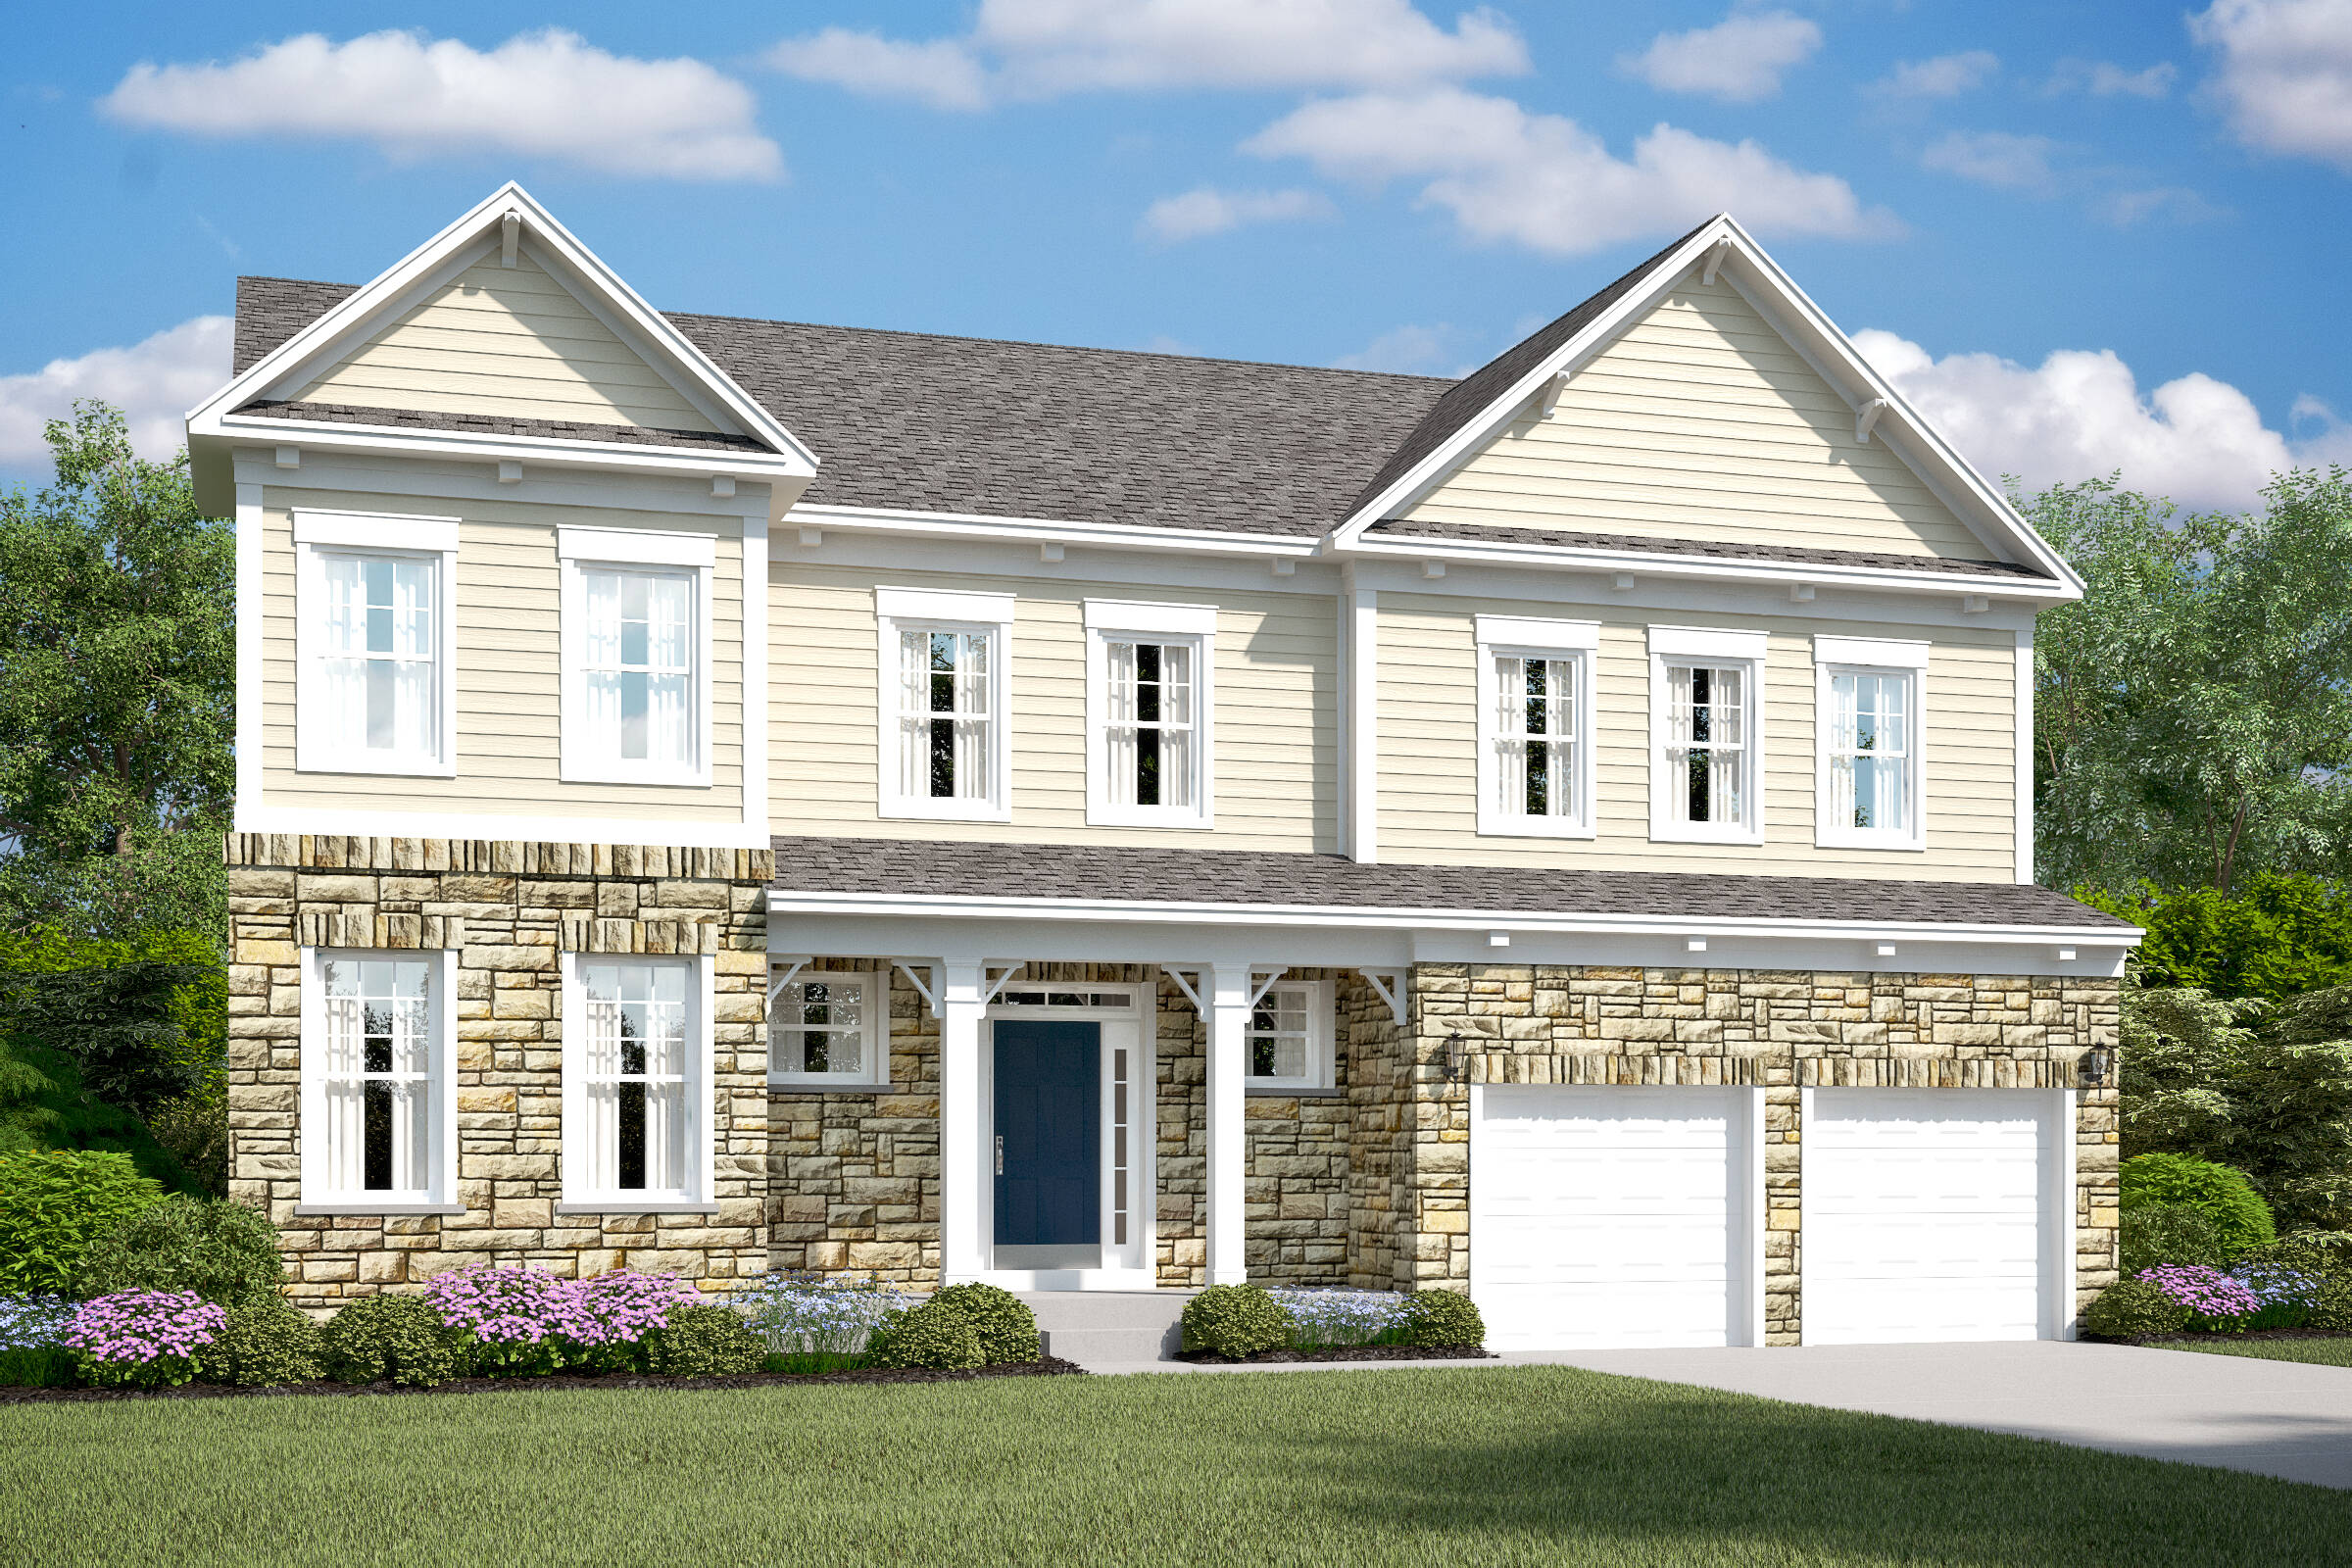 louisville et new homes at burke junction in virginia